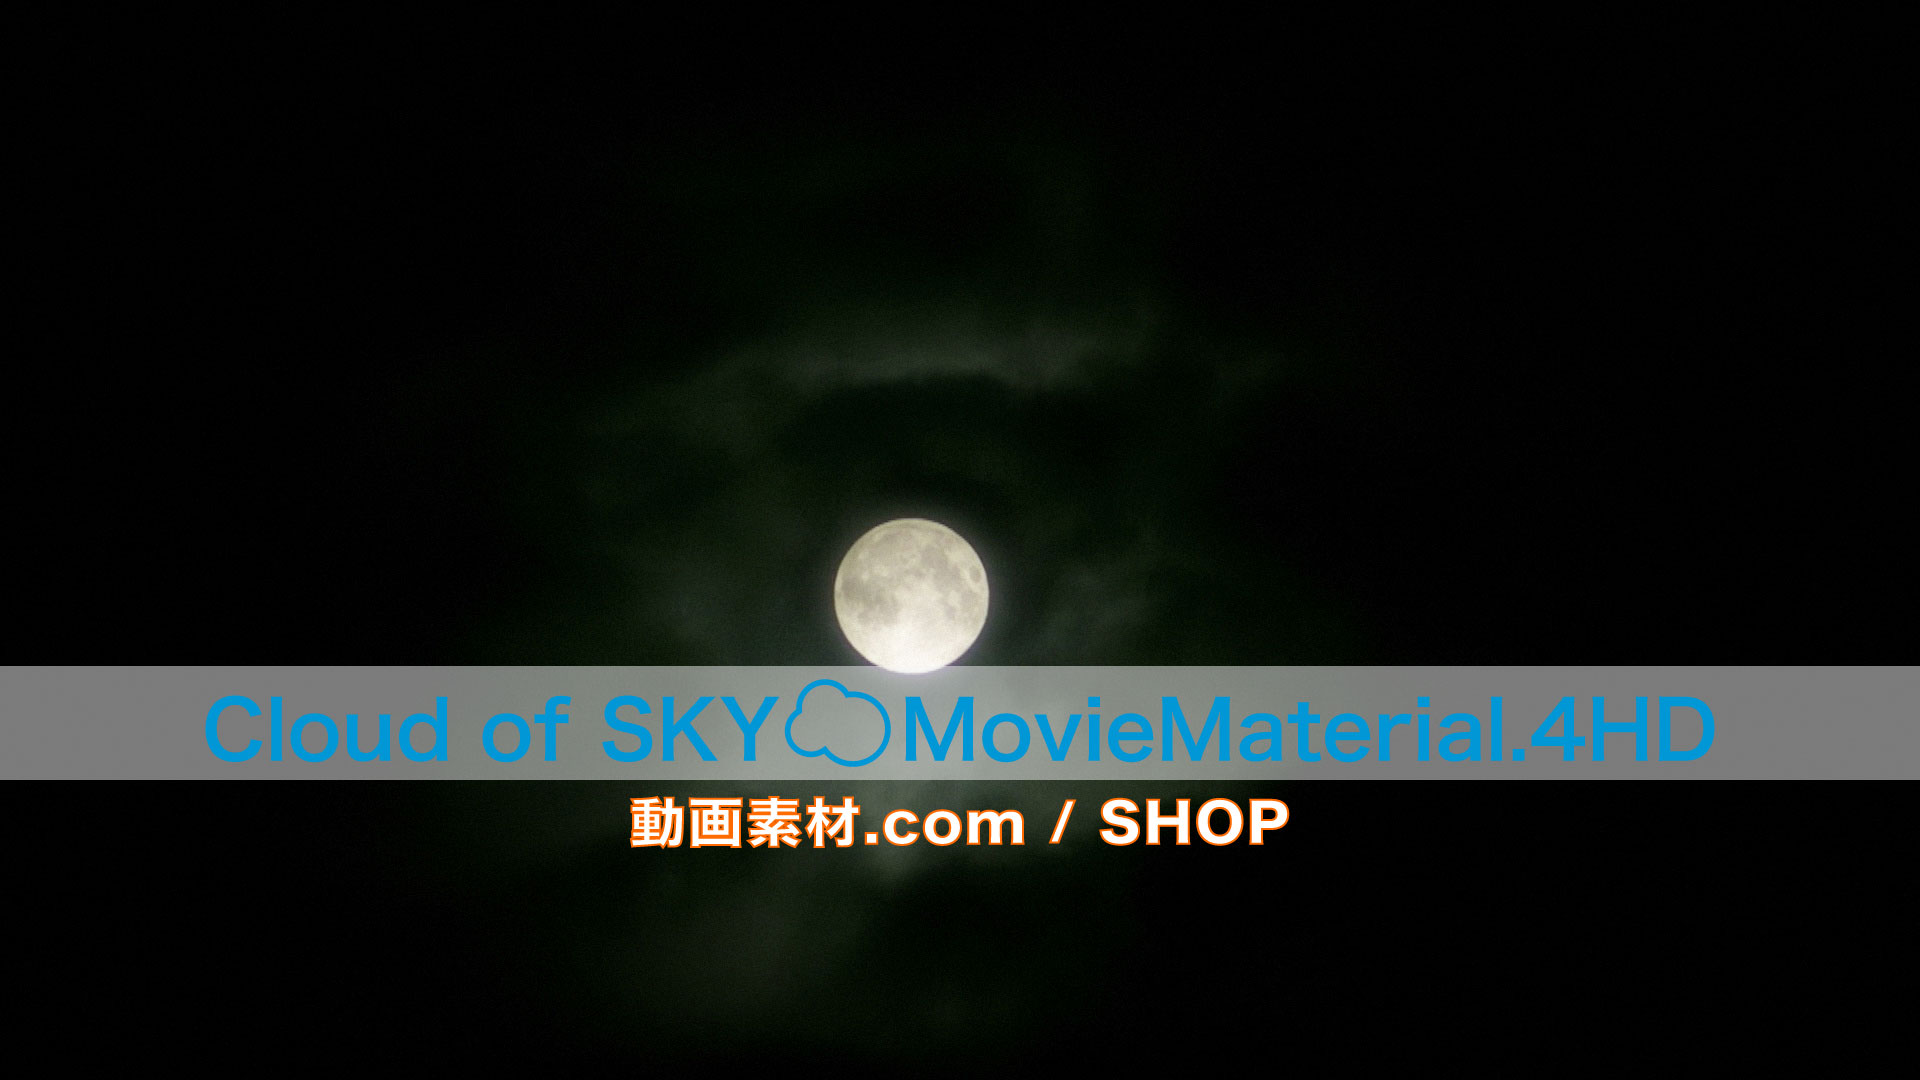 【Cloud of SKY MovieMaterial.4HD】ロイヤリティフリー フルハイビジョン空と雲の動画素材集 Image.12